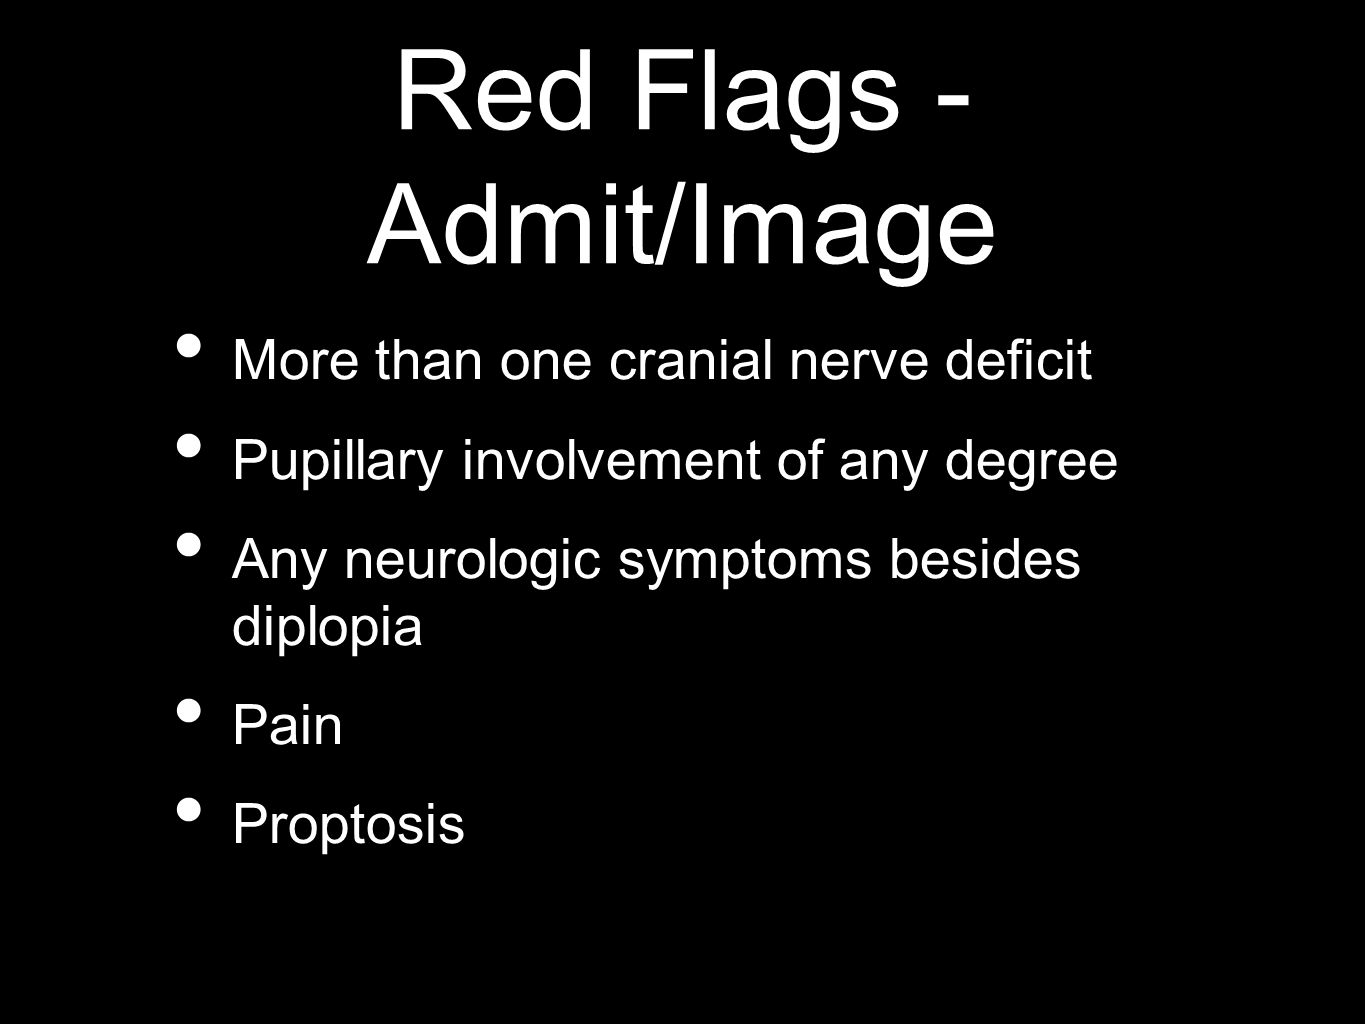 Red Flags - Admit/Image